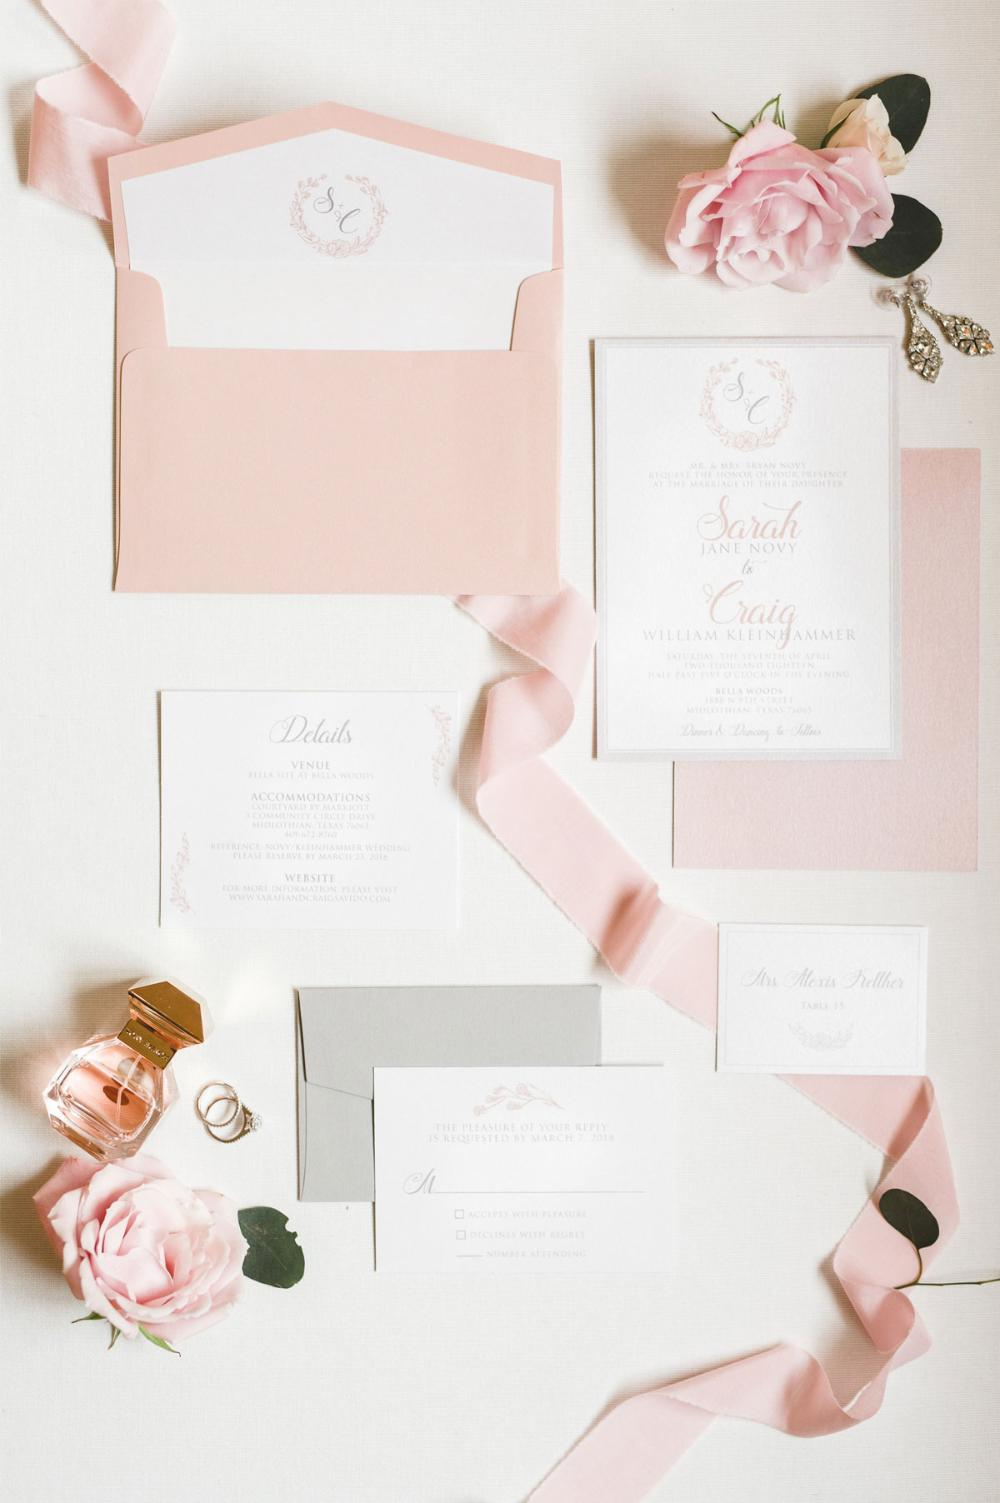 Floral Wreath Modern Monogram in Pink Blush and Grey Wedding Invitation with Details, RSVP